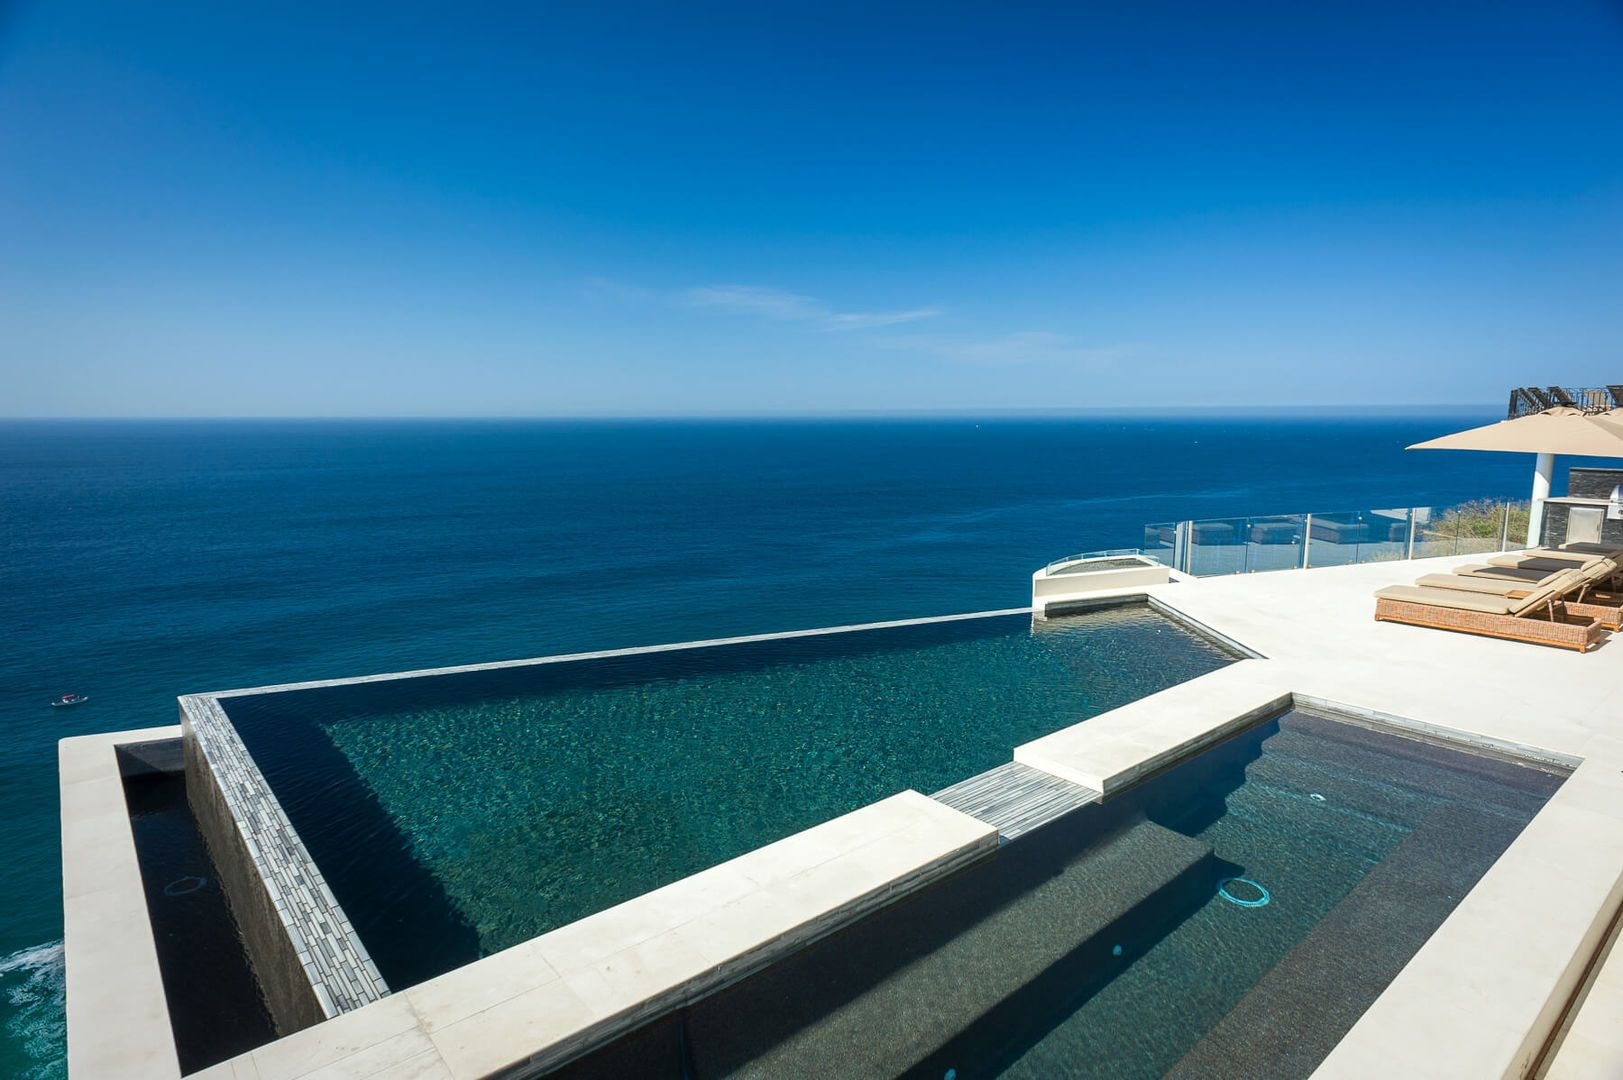 Luxury vacation rentals mexico - Los cabos - Cabo - Pedregal - Villa Lands End - Image 1/23